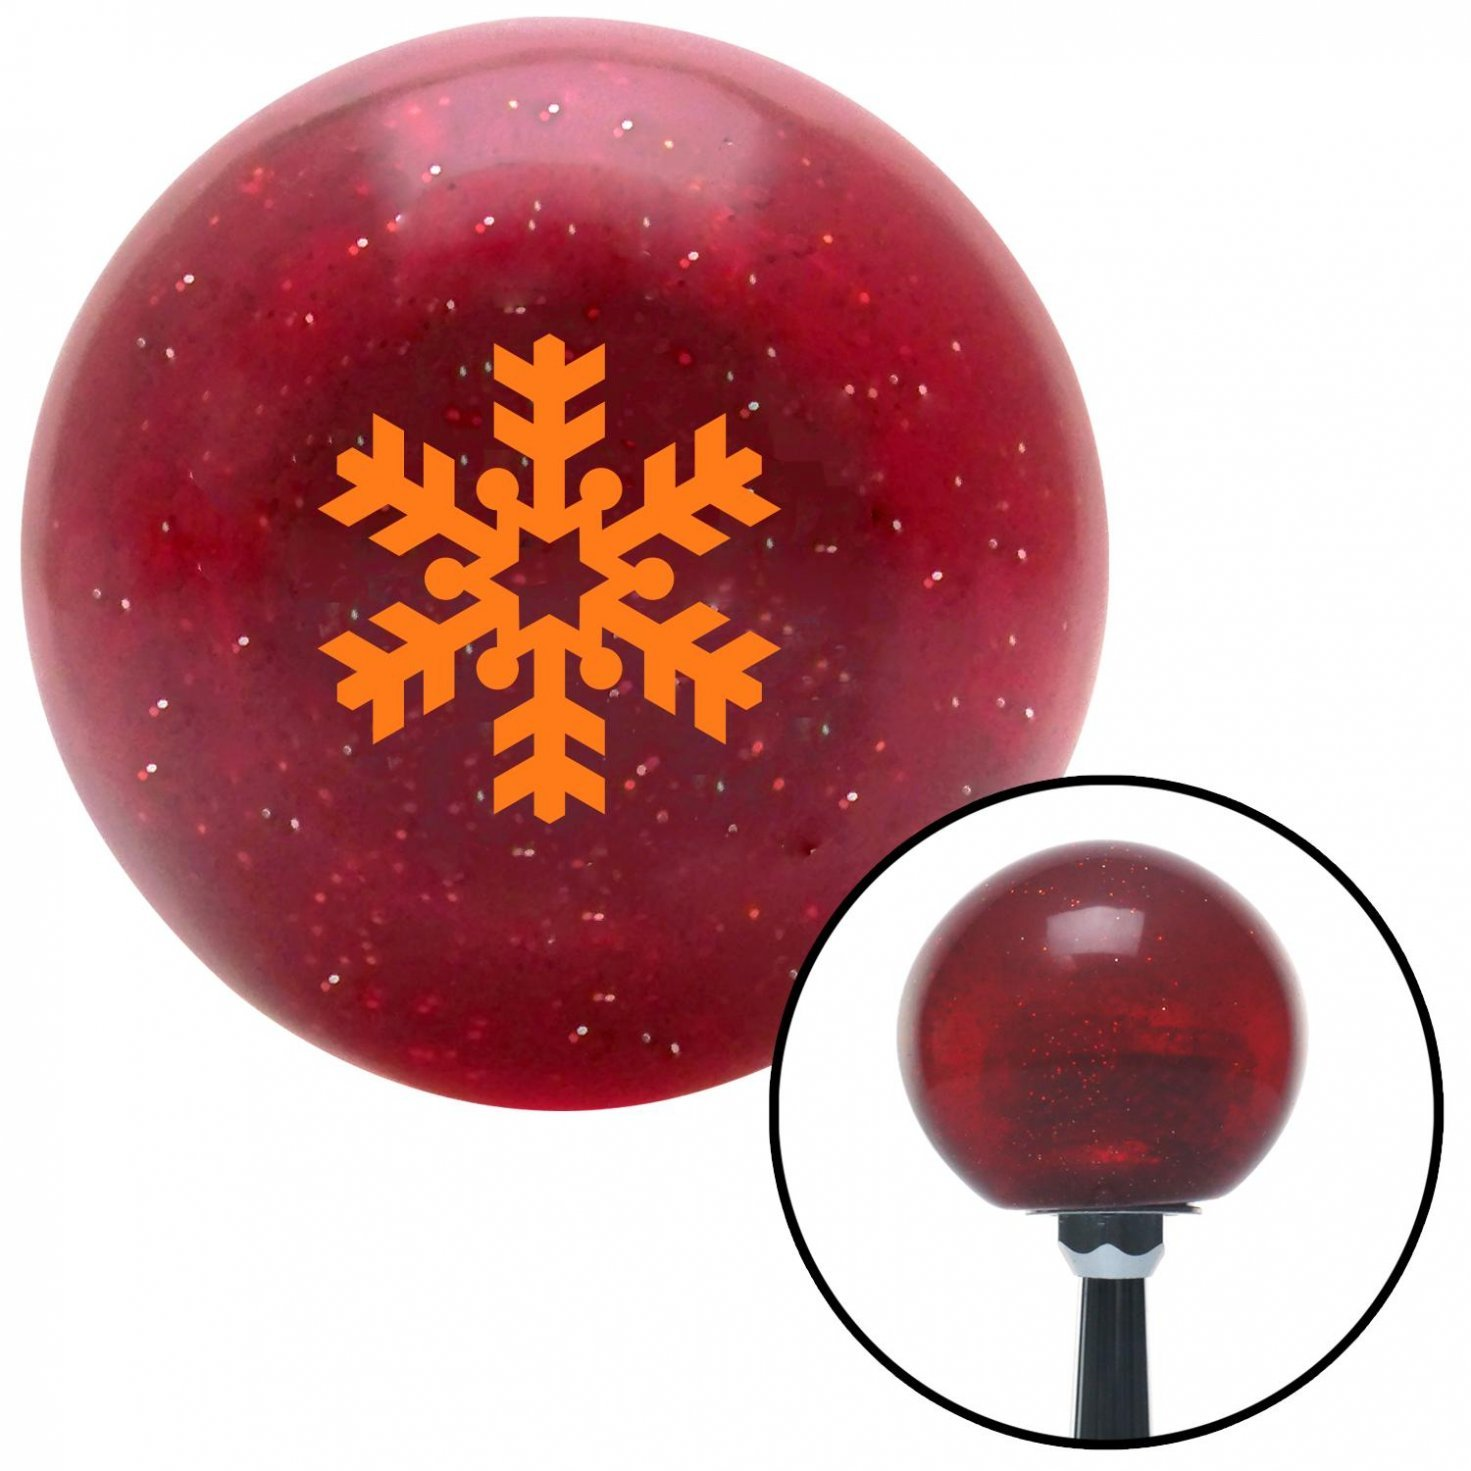 Orange Snowflake Filled in American Shifter 54078 Red Metal Flake Shift Knob with 16mm x 1.5 Insert